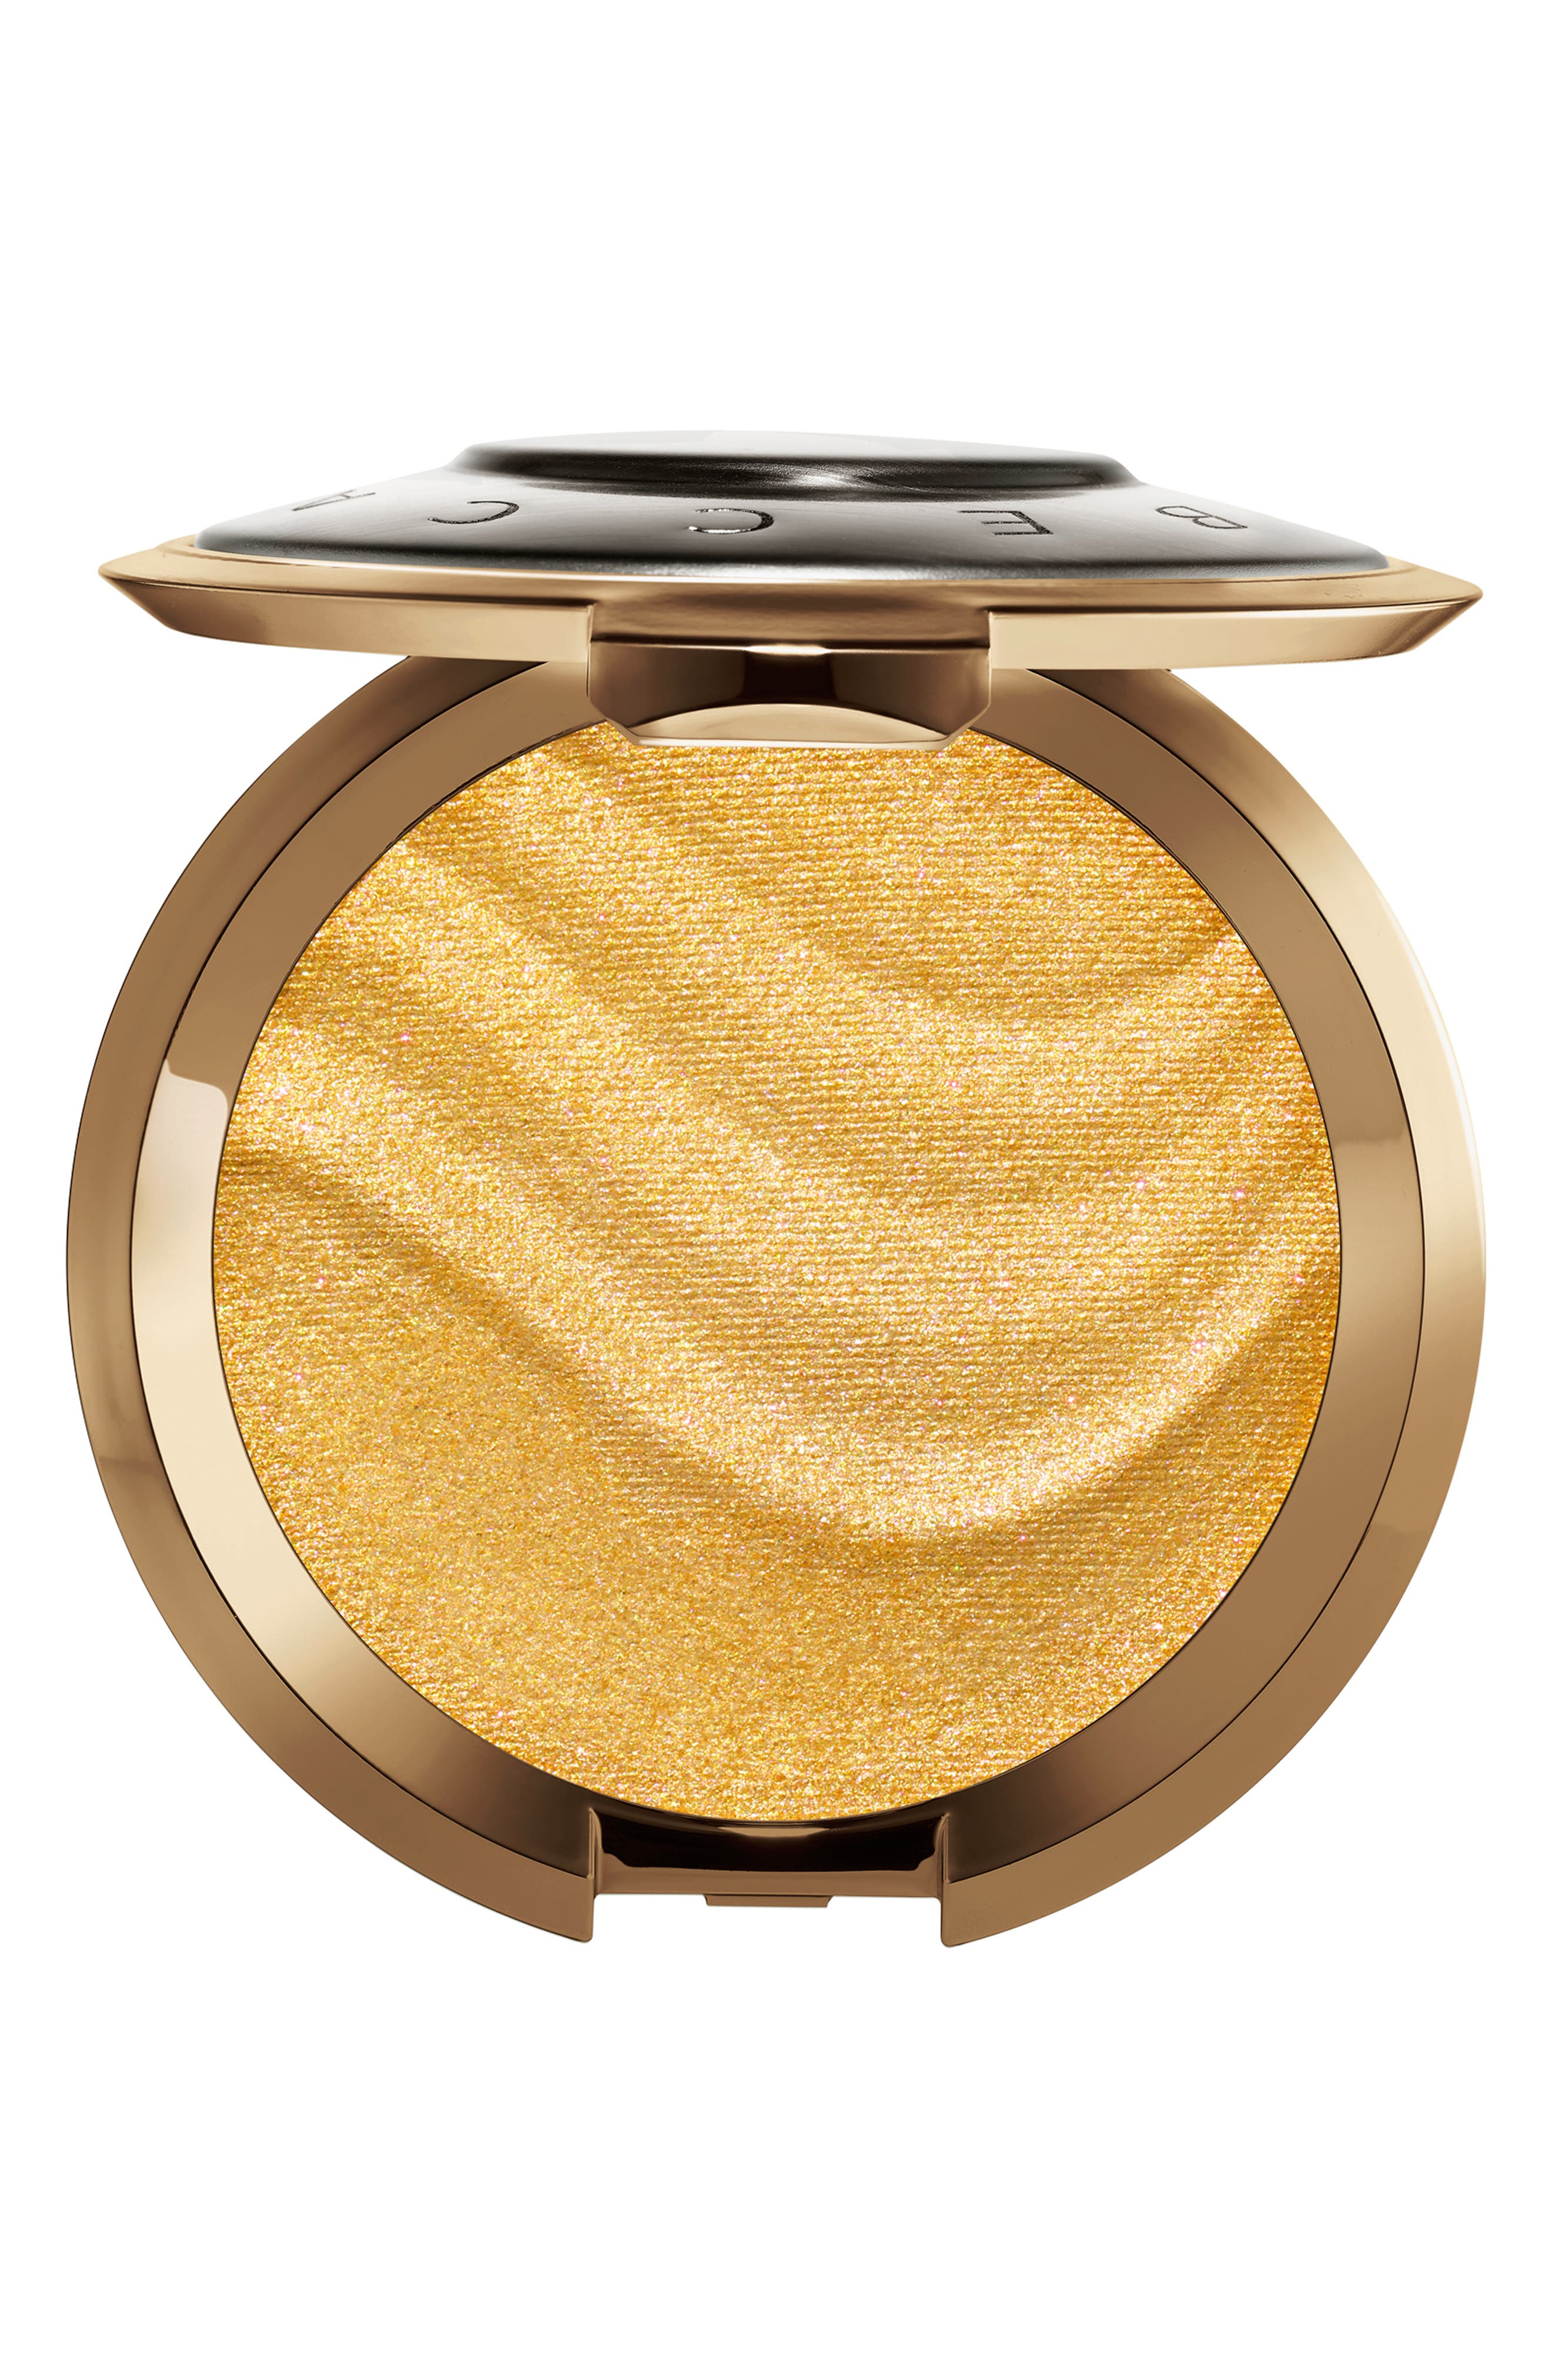 Image of BECCA Cosmetics Shimmering Skin Perfector Powder Highlighter - Lava Gold